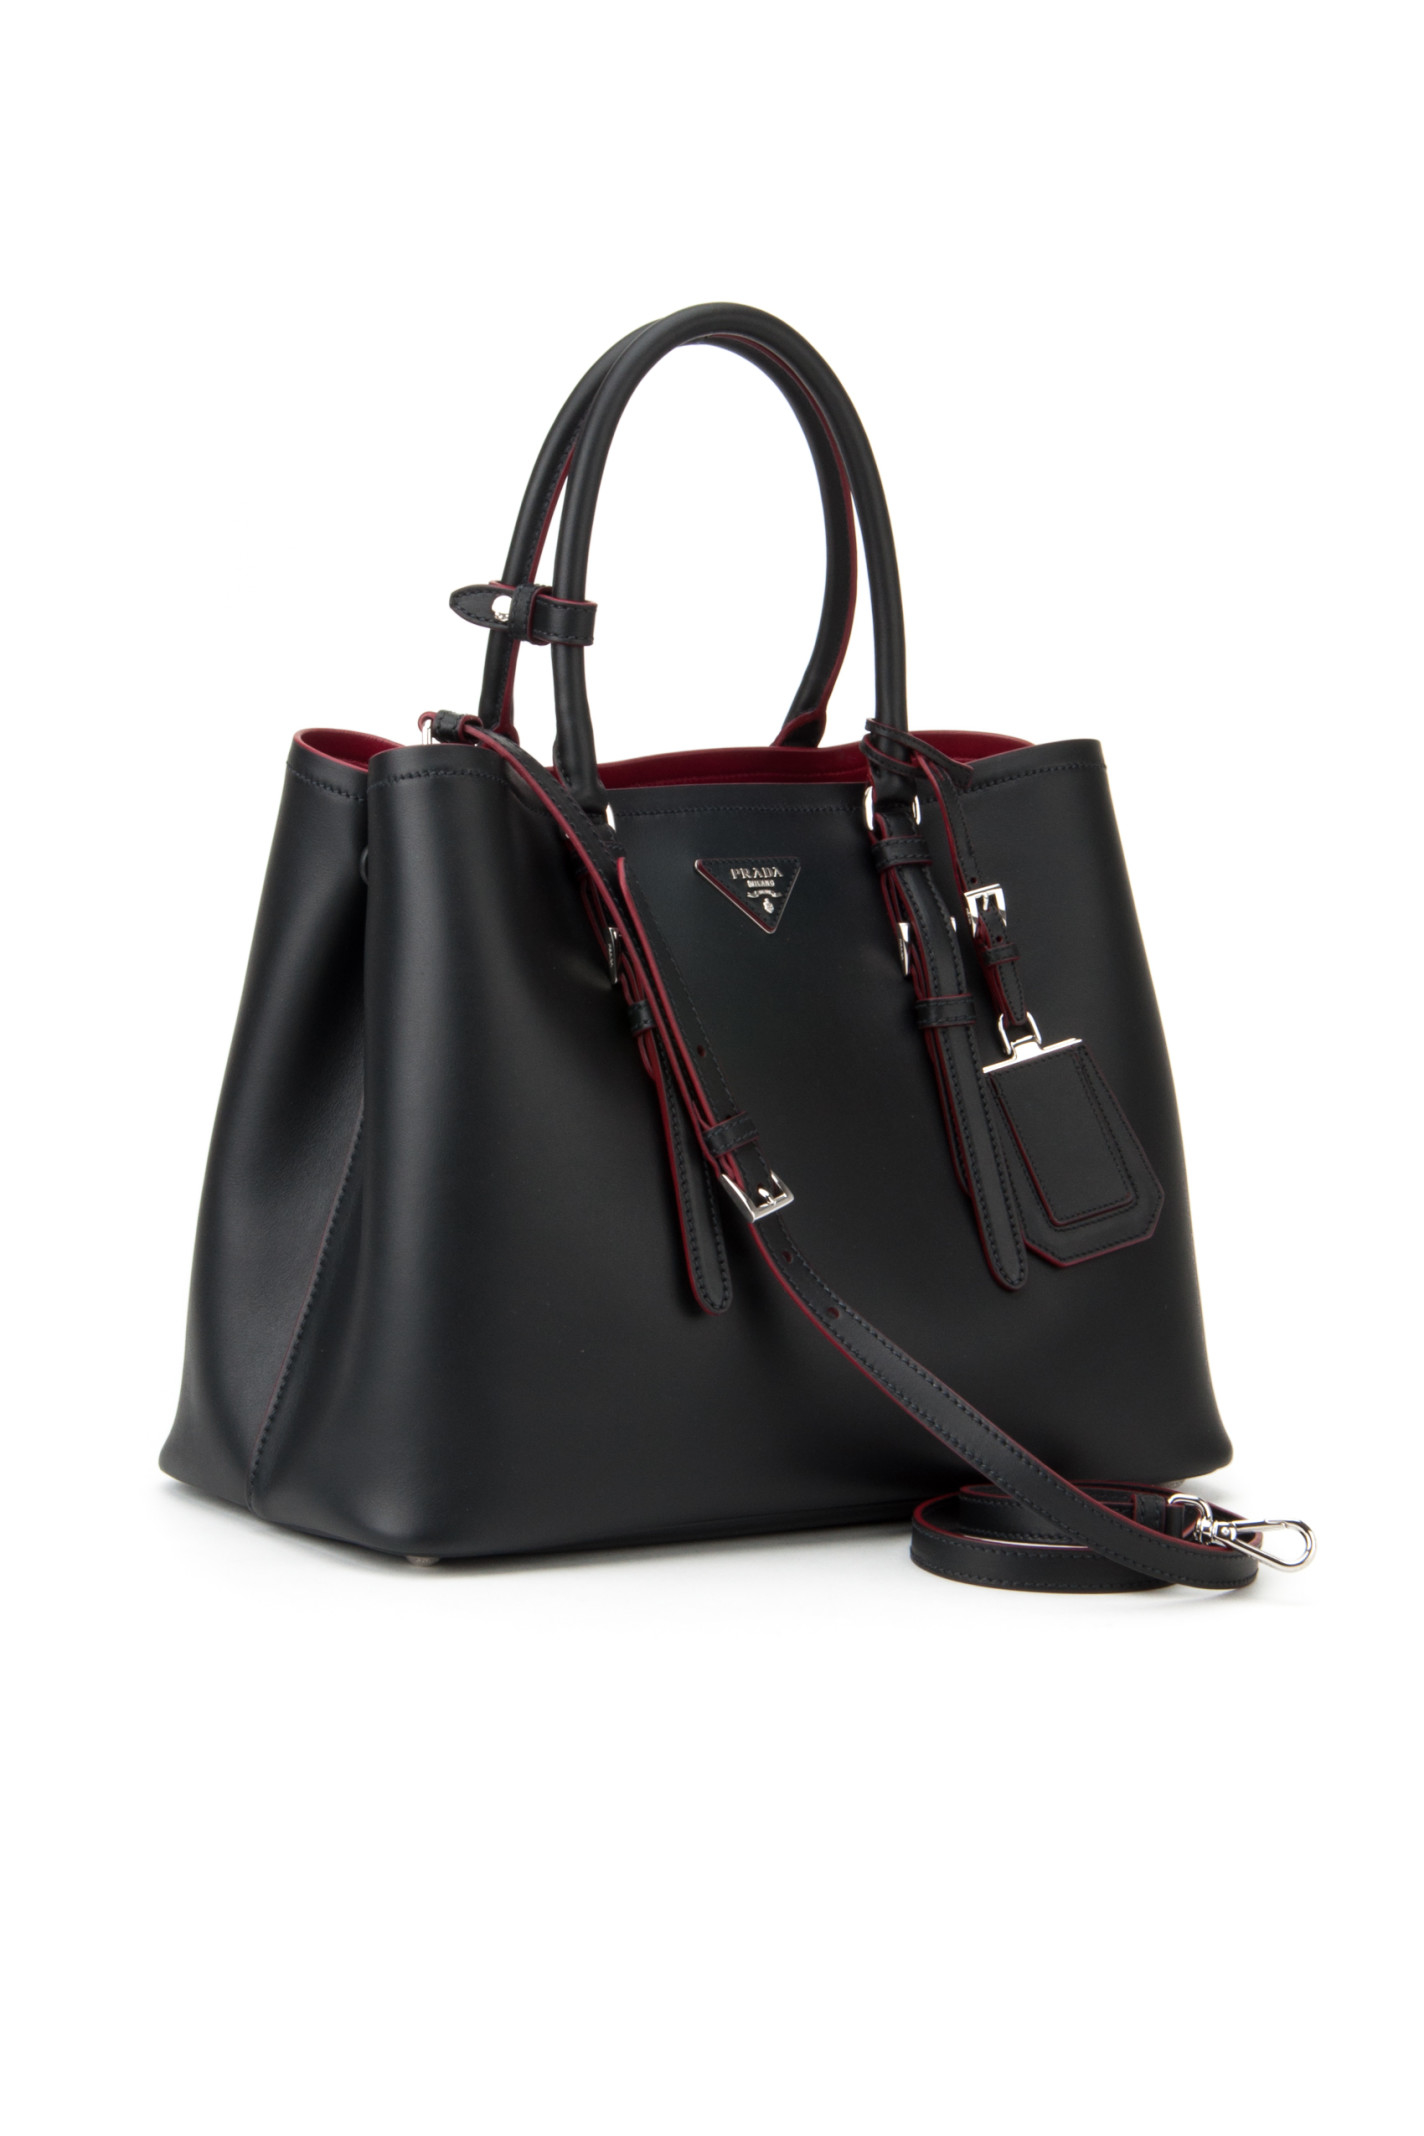 blue prada handbag - Prada Borsa City Sport in Red (NERO/CILIEGIA) | Lyst